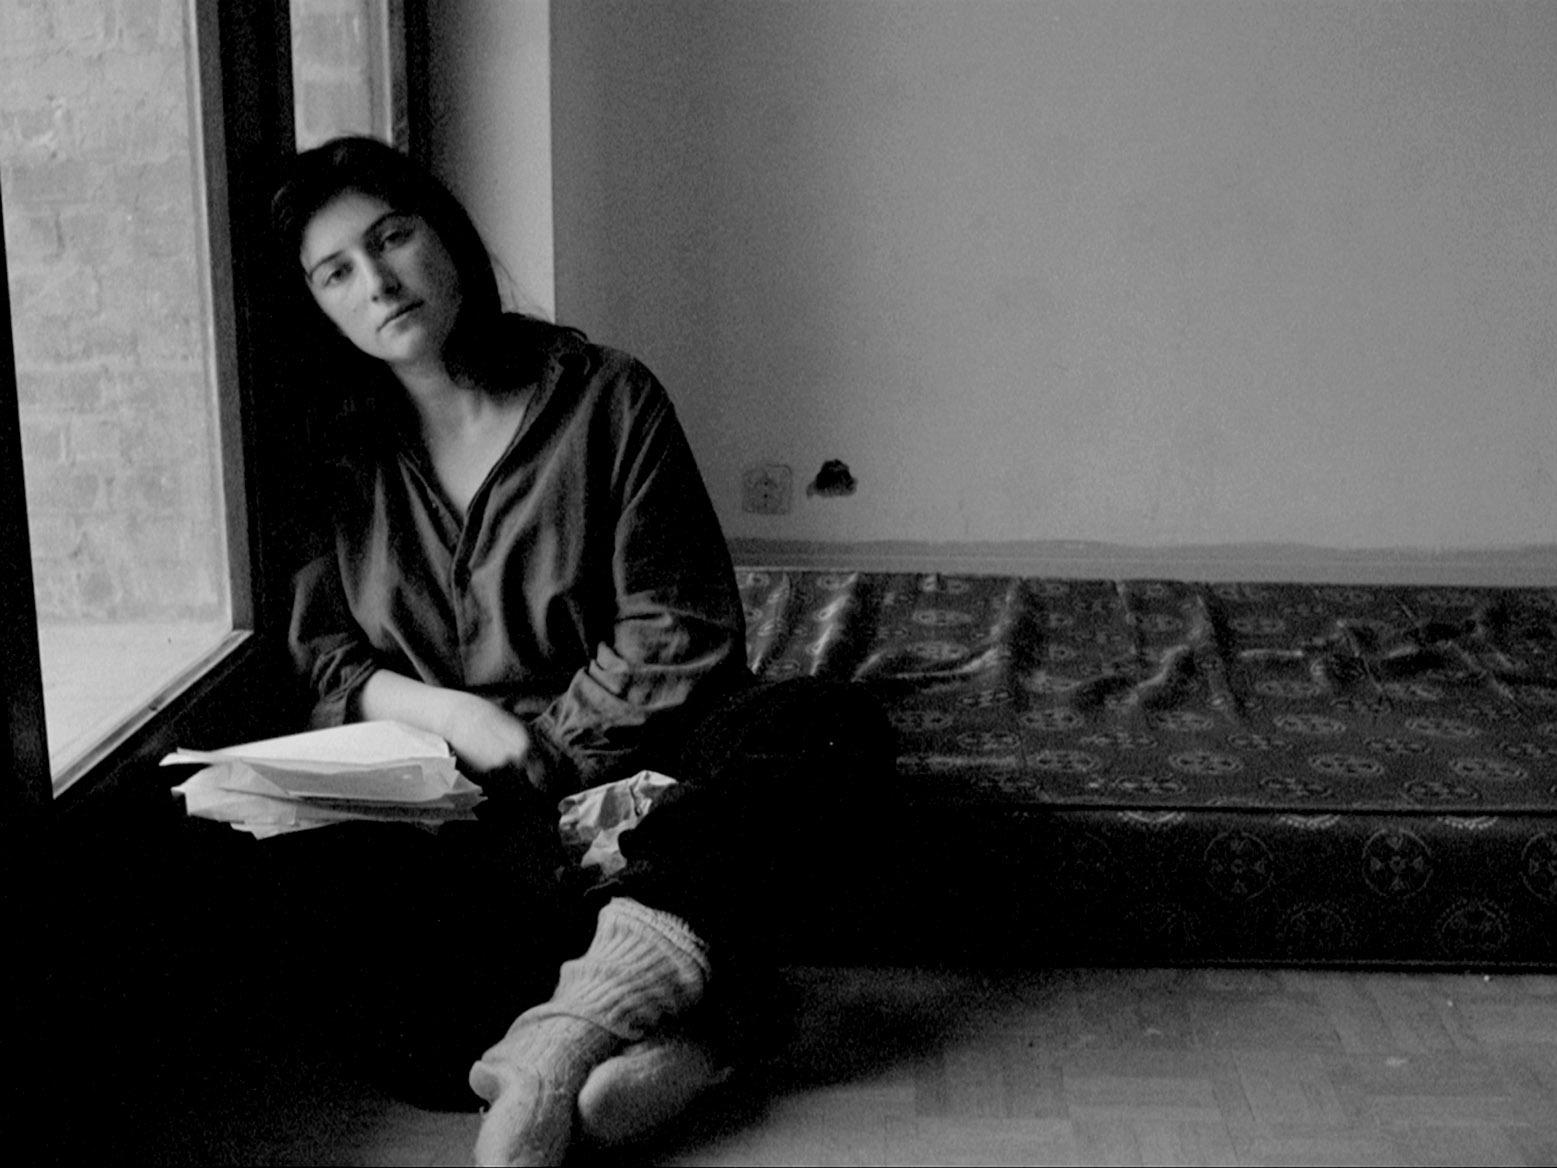 Retrospective Roundtable: Chantal Akerman